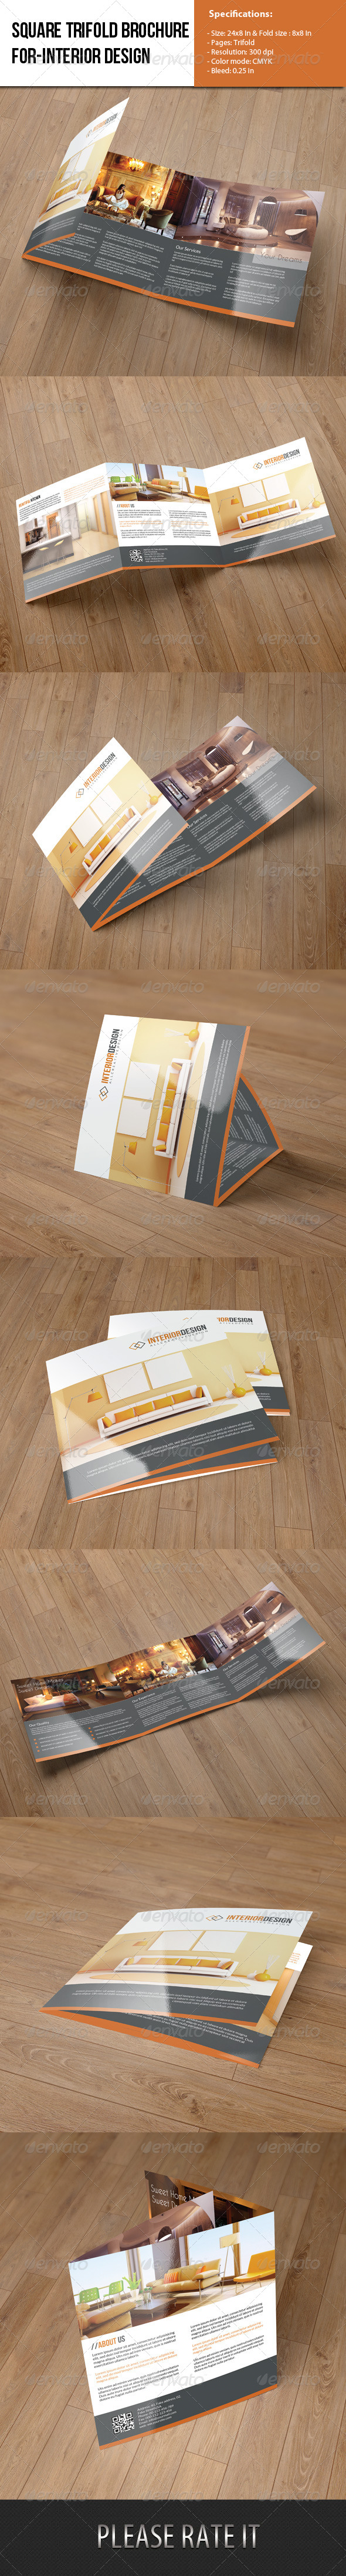 Square Trifold Brochure-Interior Design - Corporate Brochures